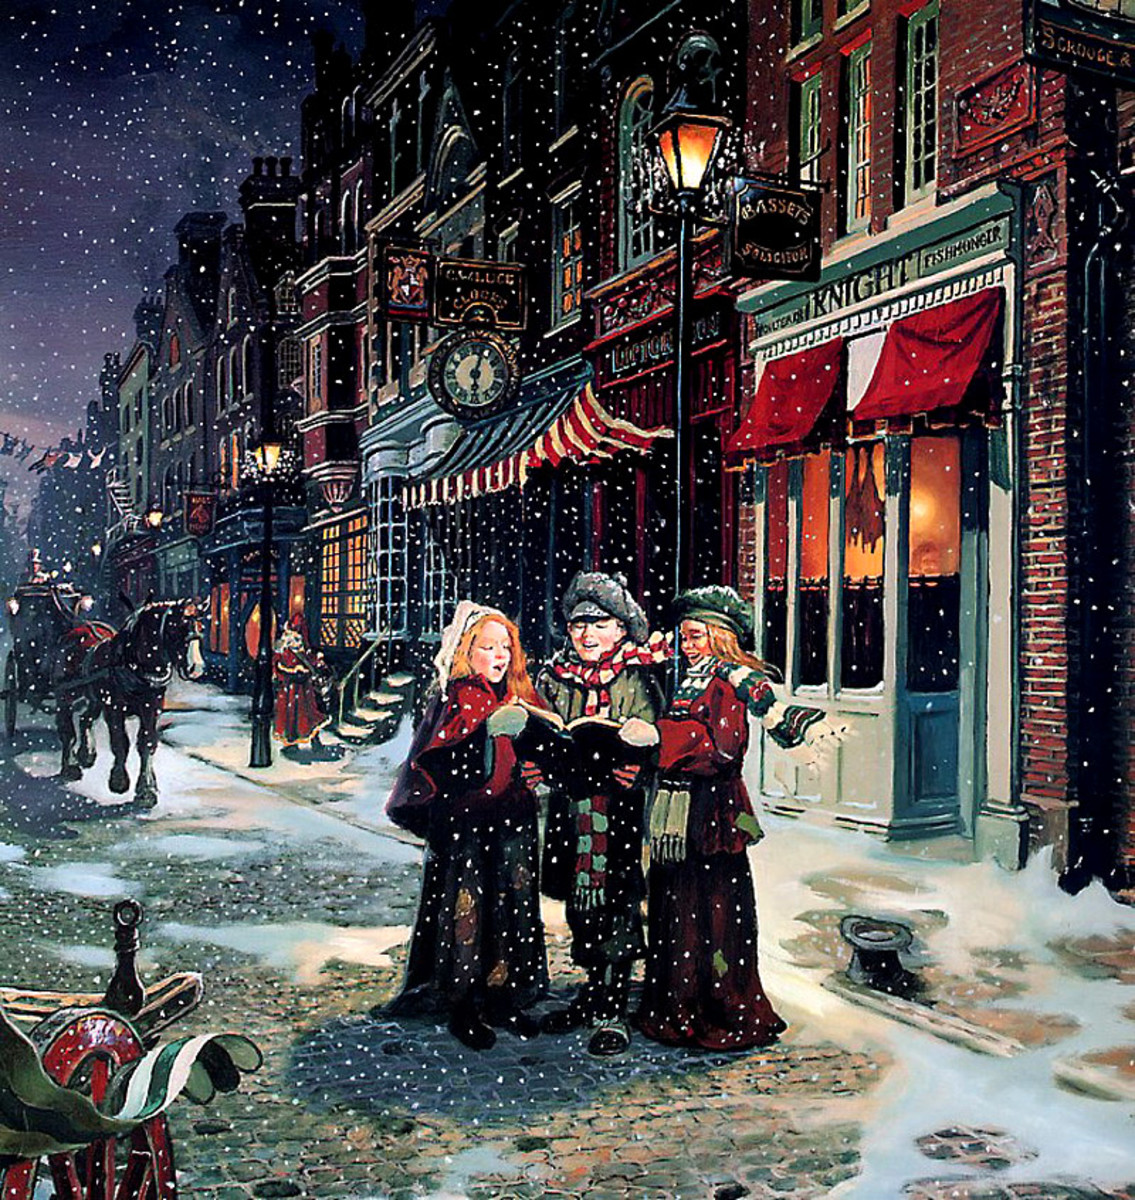 30 Favourite Christmas Carols - Their Origins and History